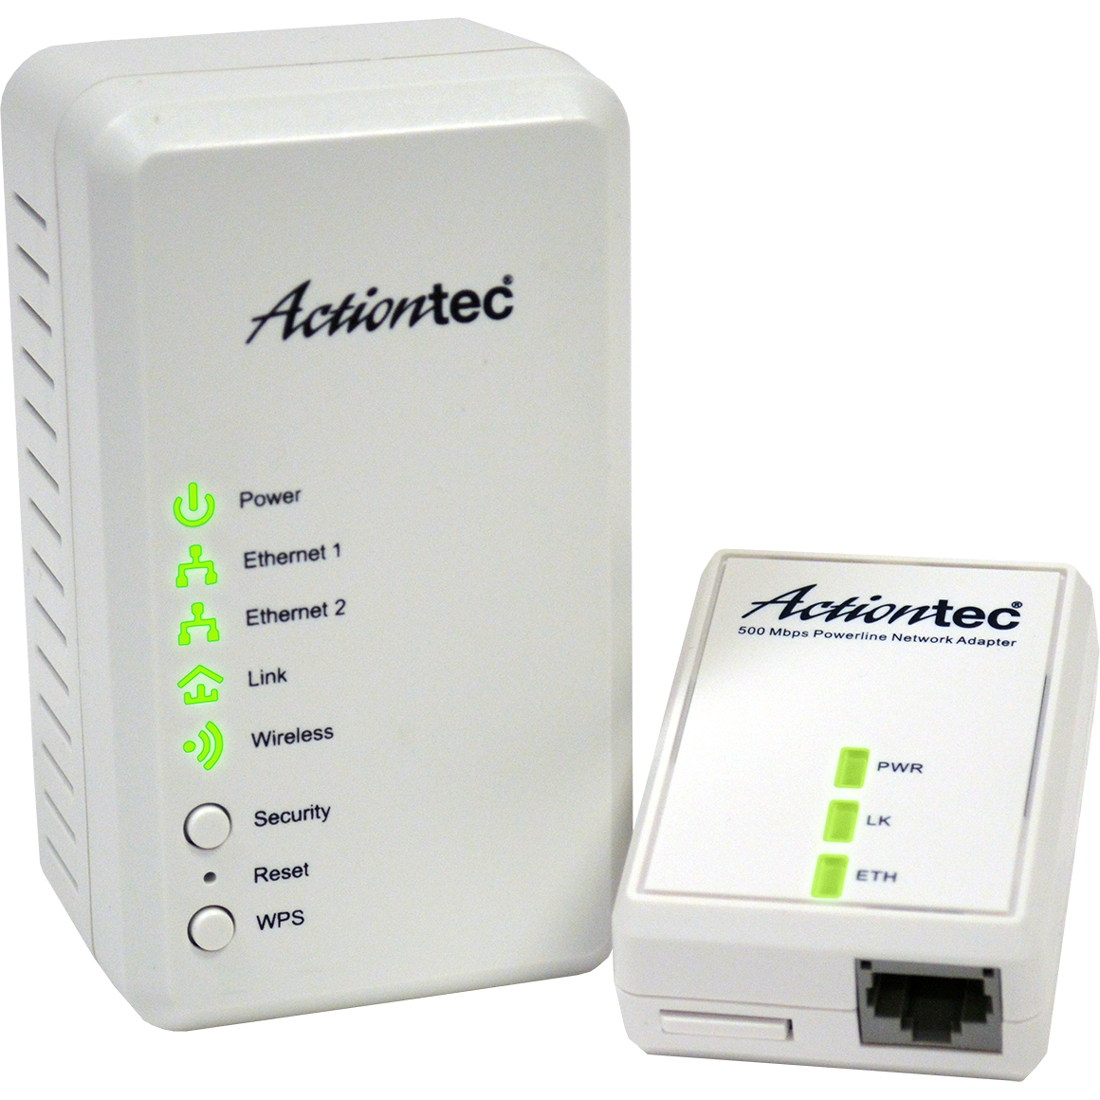 Actiontec Wireless Network Extender + Powerline Network A...